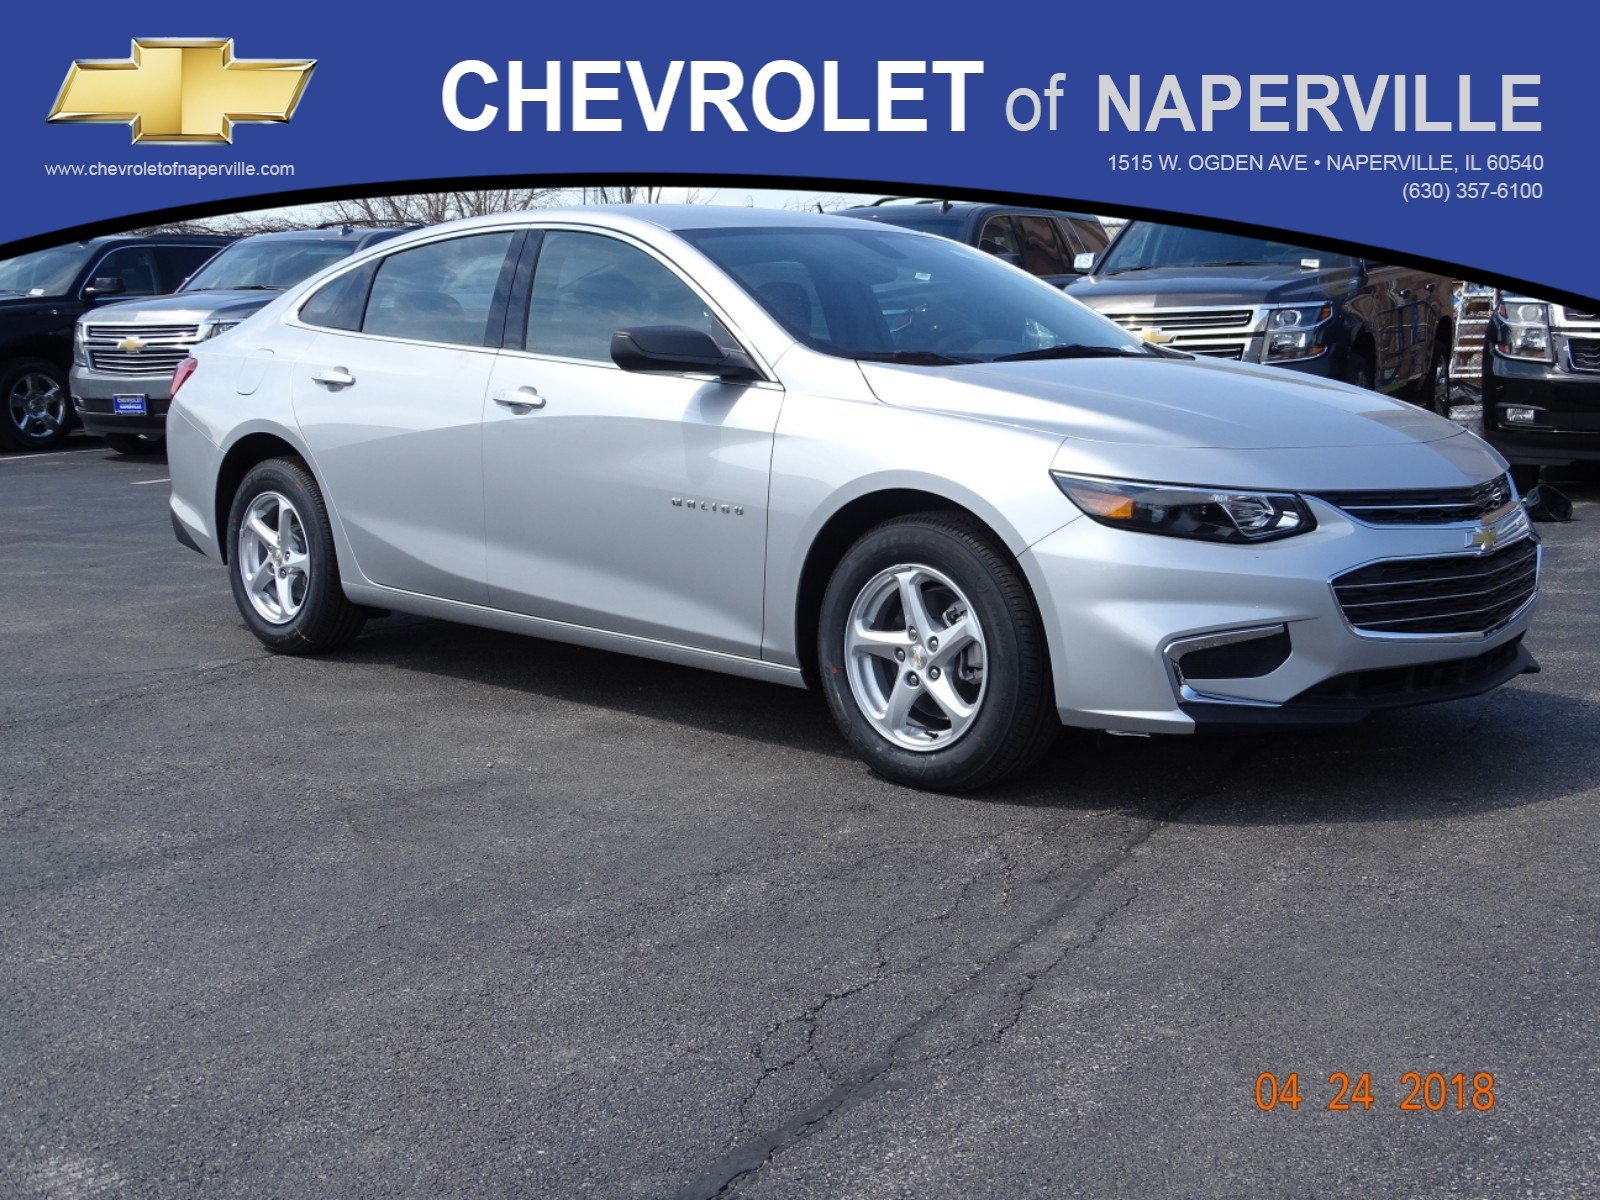 sport in chevrolet naperville new of beautiful wheels utility premier equinox